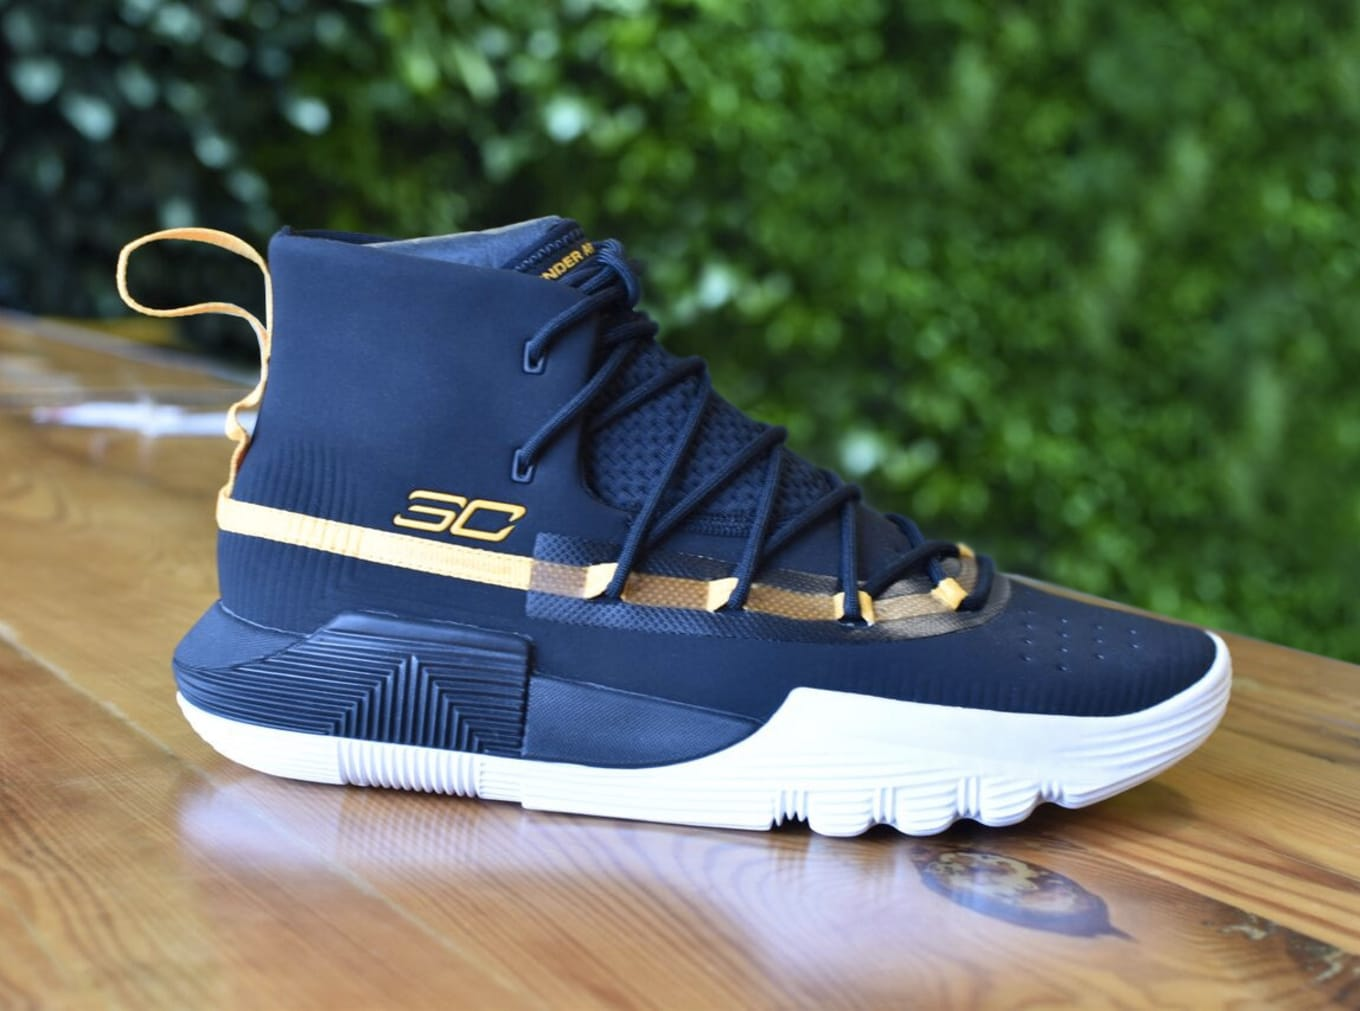 42d7cdfacd12 Under Armour Curry 3Zer0 II 2 Release Date